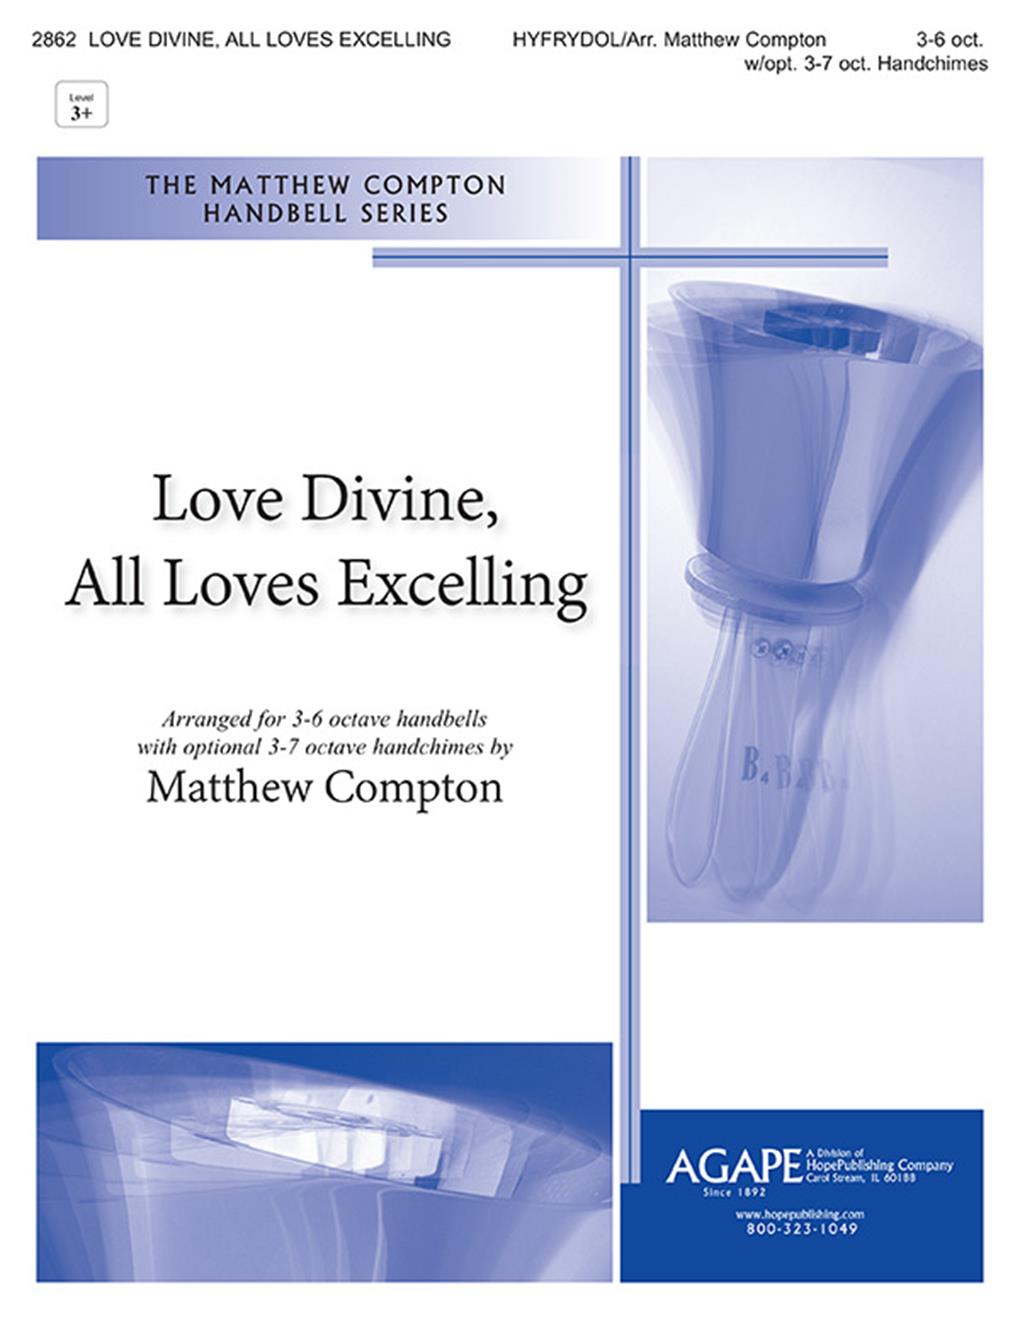 Love Divine All Loves Excelling - 3-6 oct. Cover Image